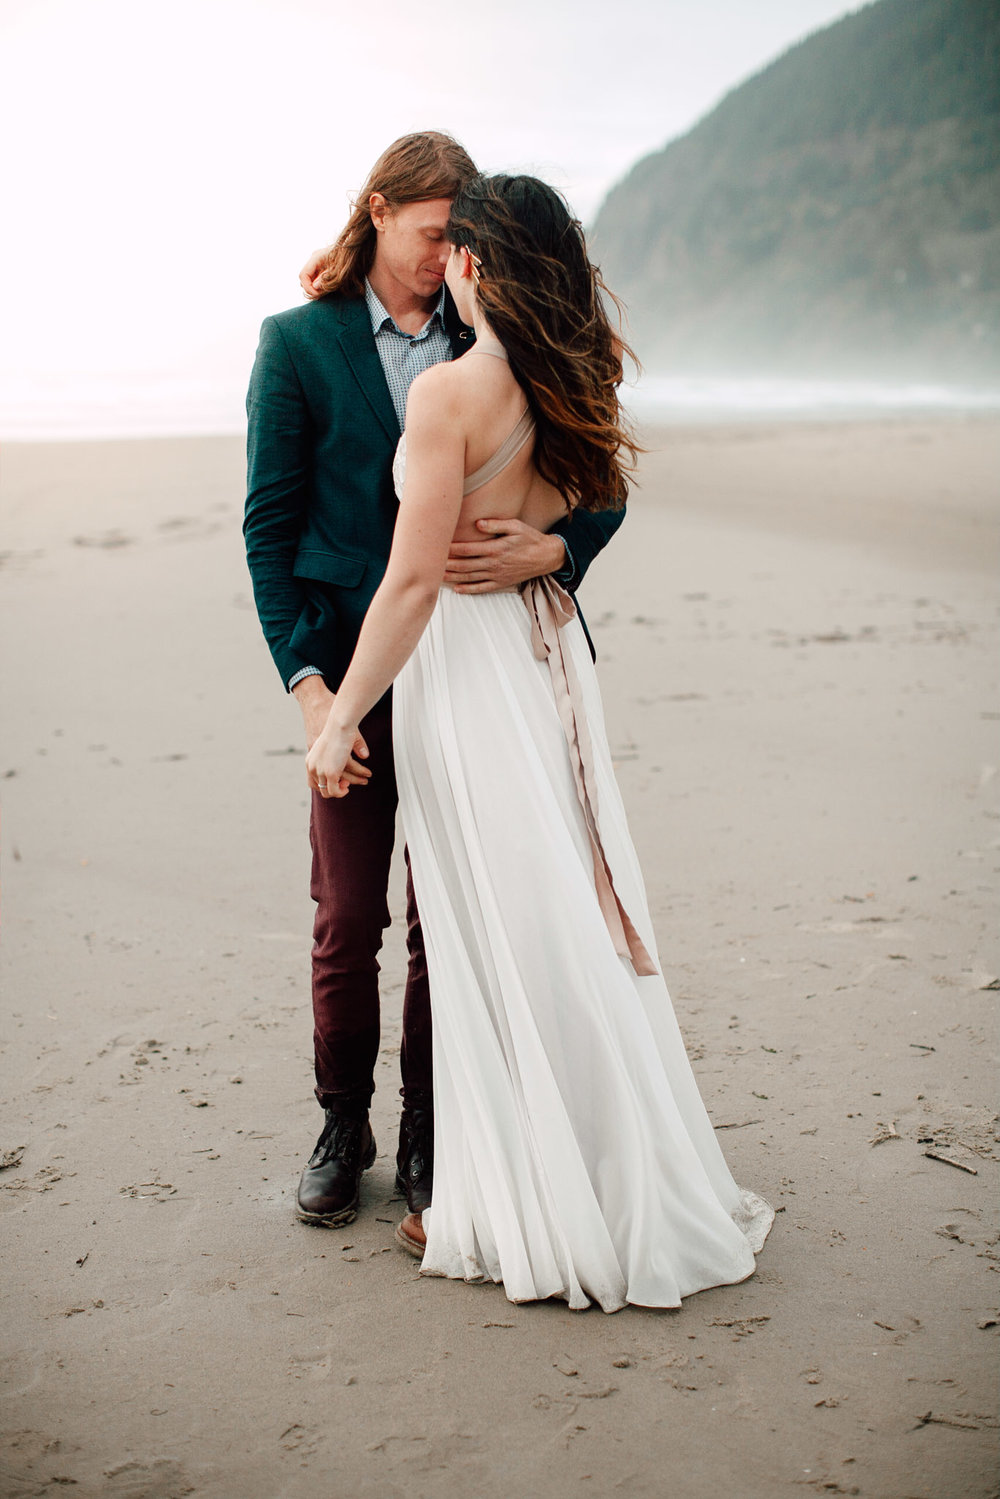 Oregon-Coast-Manzanita-Beach-Engagement-Pia-Anna-Christian-Wedding-Photography-PNW-GB-16.jpg